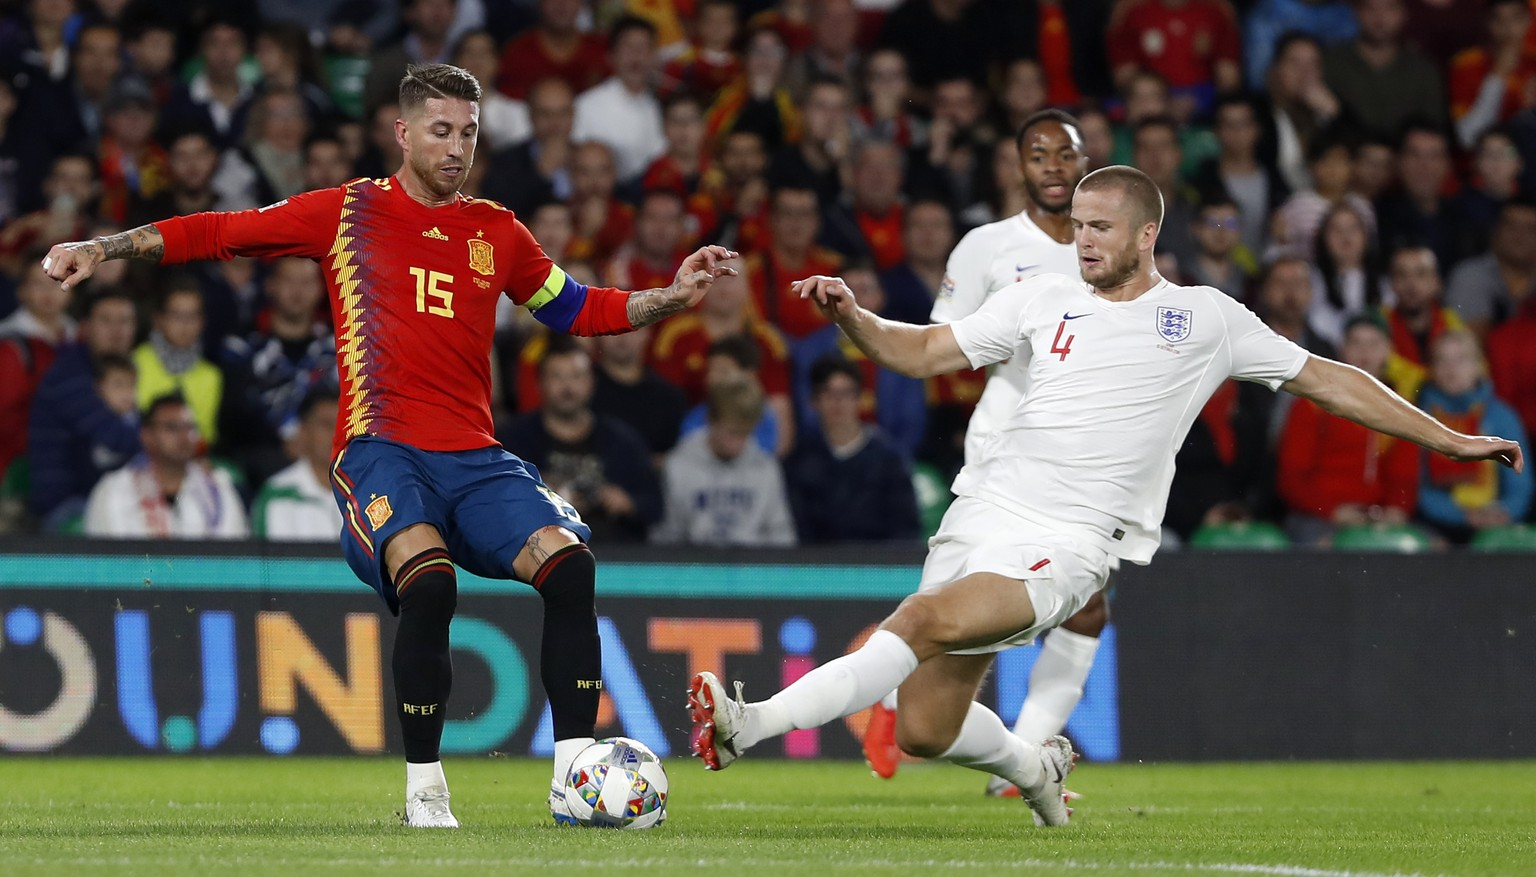 England's Eric Dier, right, stops Spain's Sergio Ramos during the UEFA Nations League soccer match between Spain and England at Benito Villamarin stadium, in Seville, Spain, Monday, Oct. 15, 2018. (AP Photo/Miguel Morenatti)